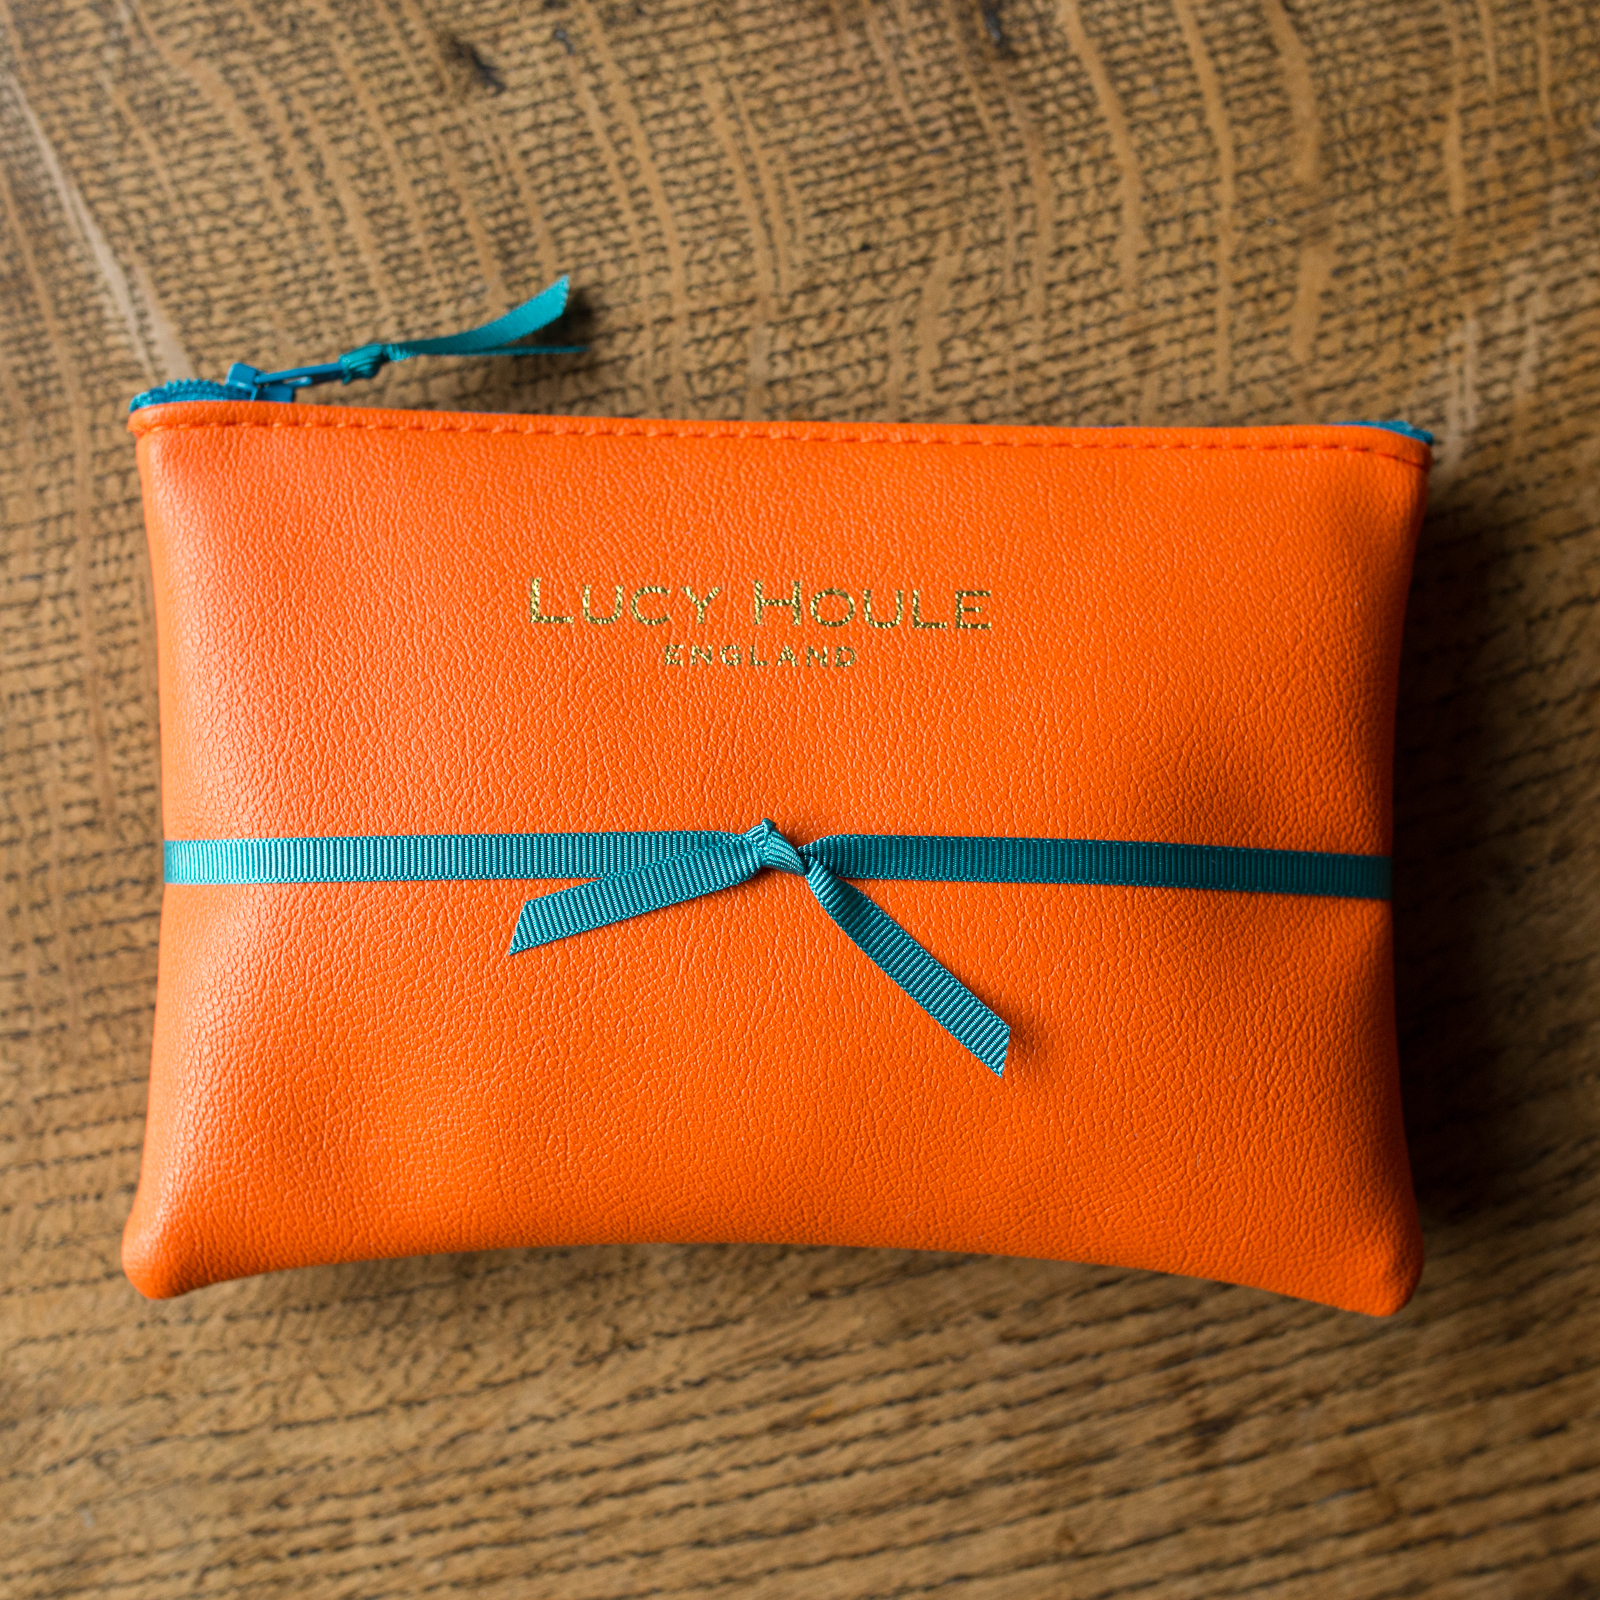 Faux Leather Orange Purse Turquoise Zip